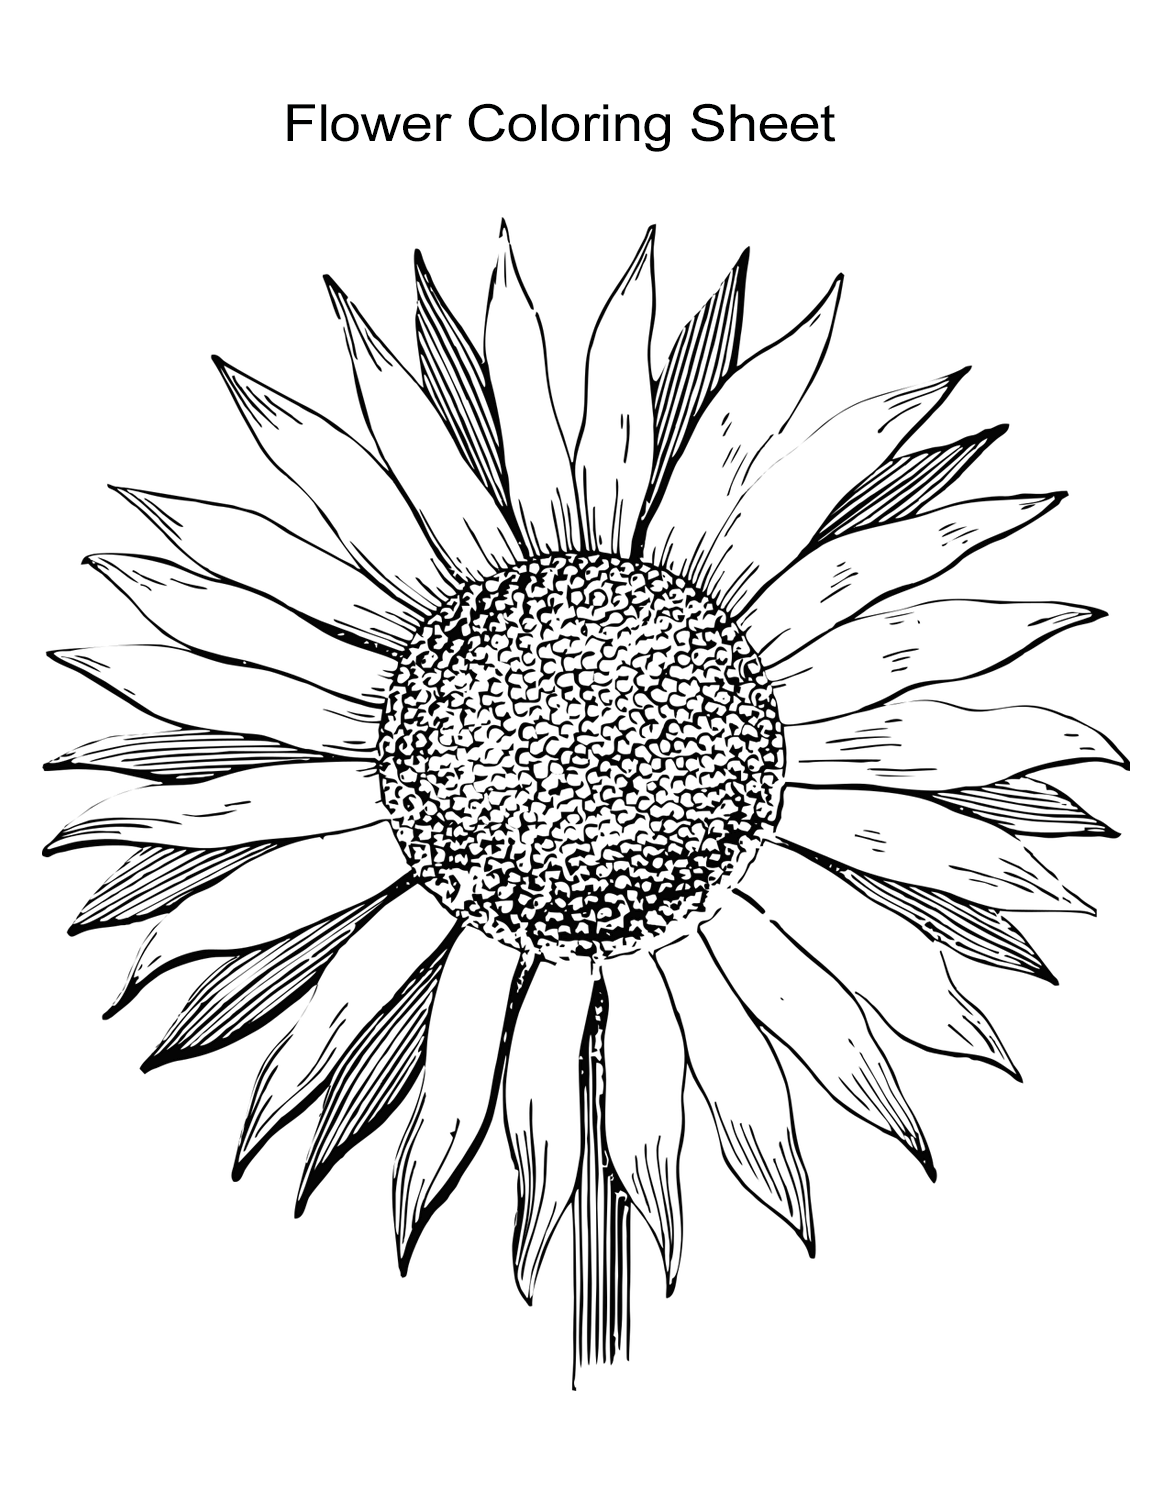 10 Flower Coloring Sheets for Girls and Boys: Free Printables to Use ...